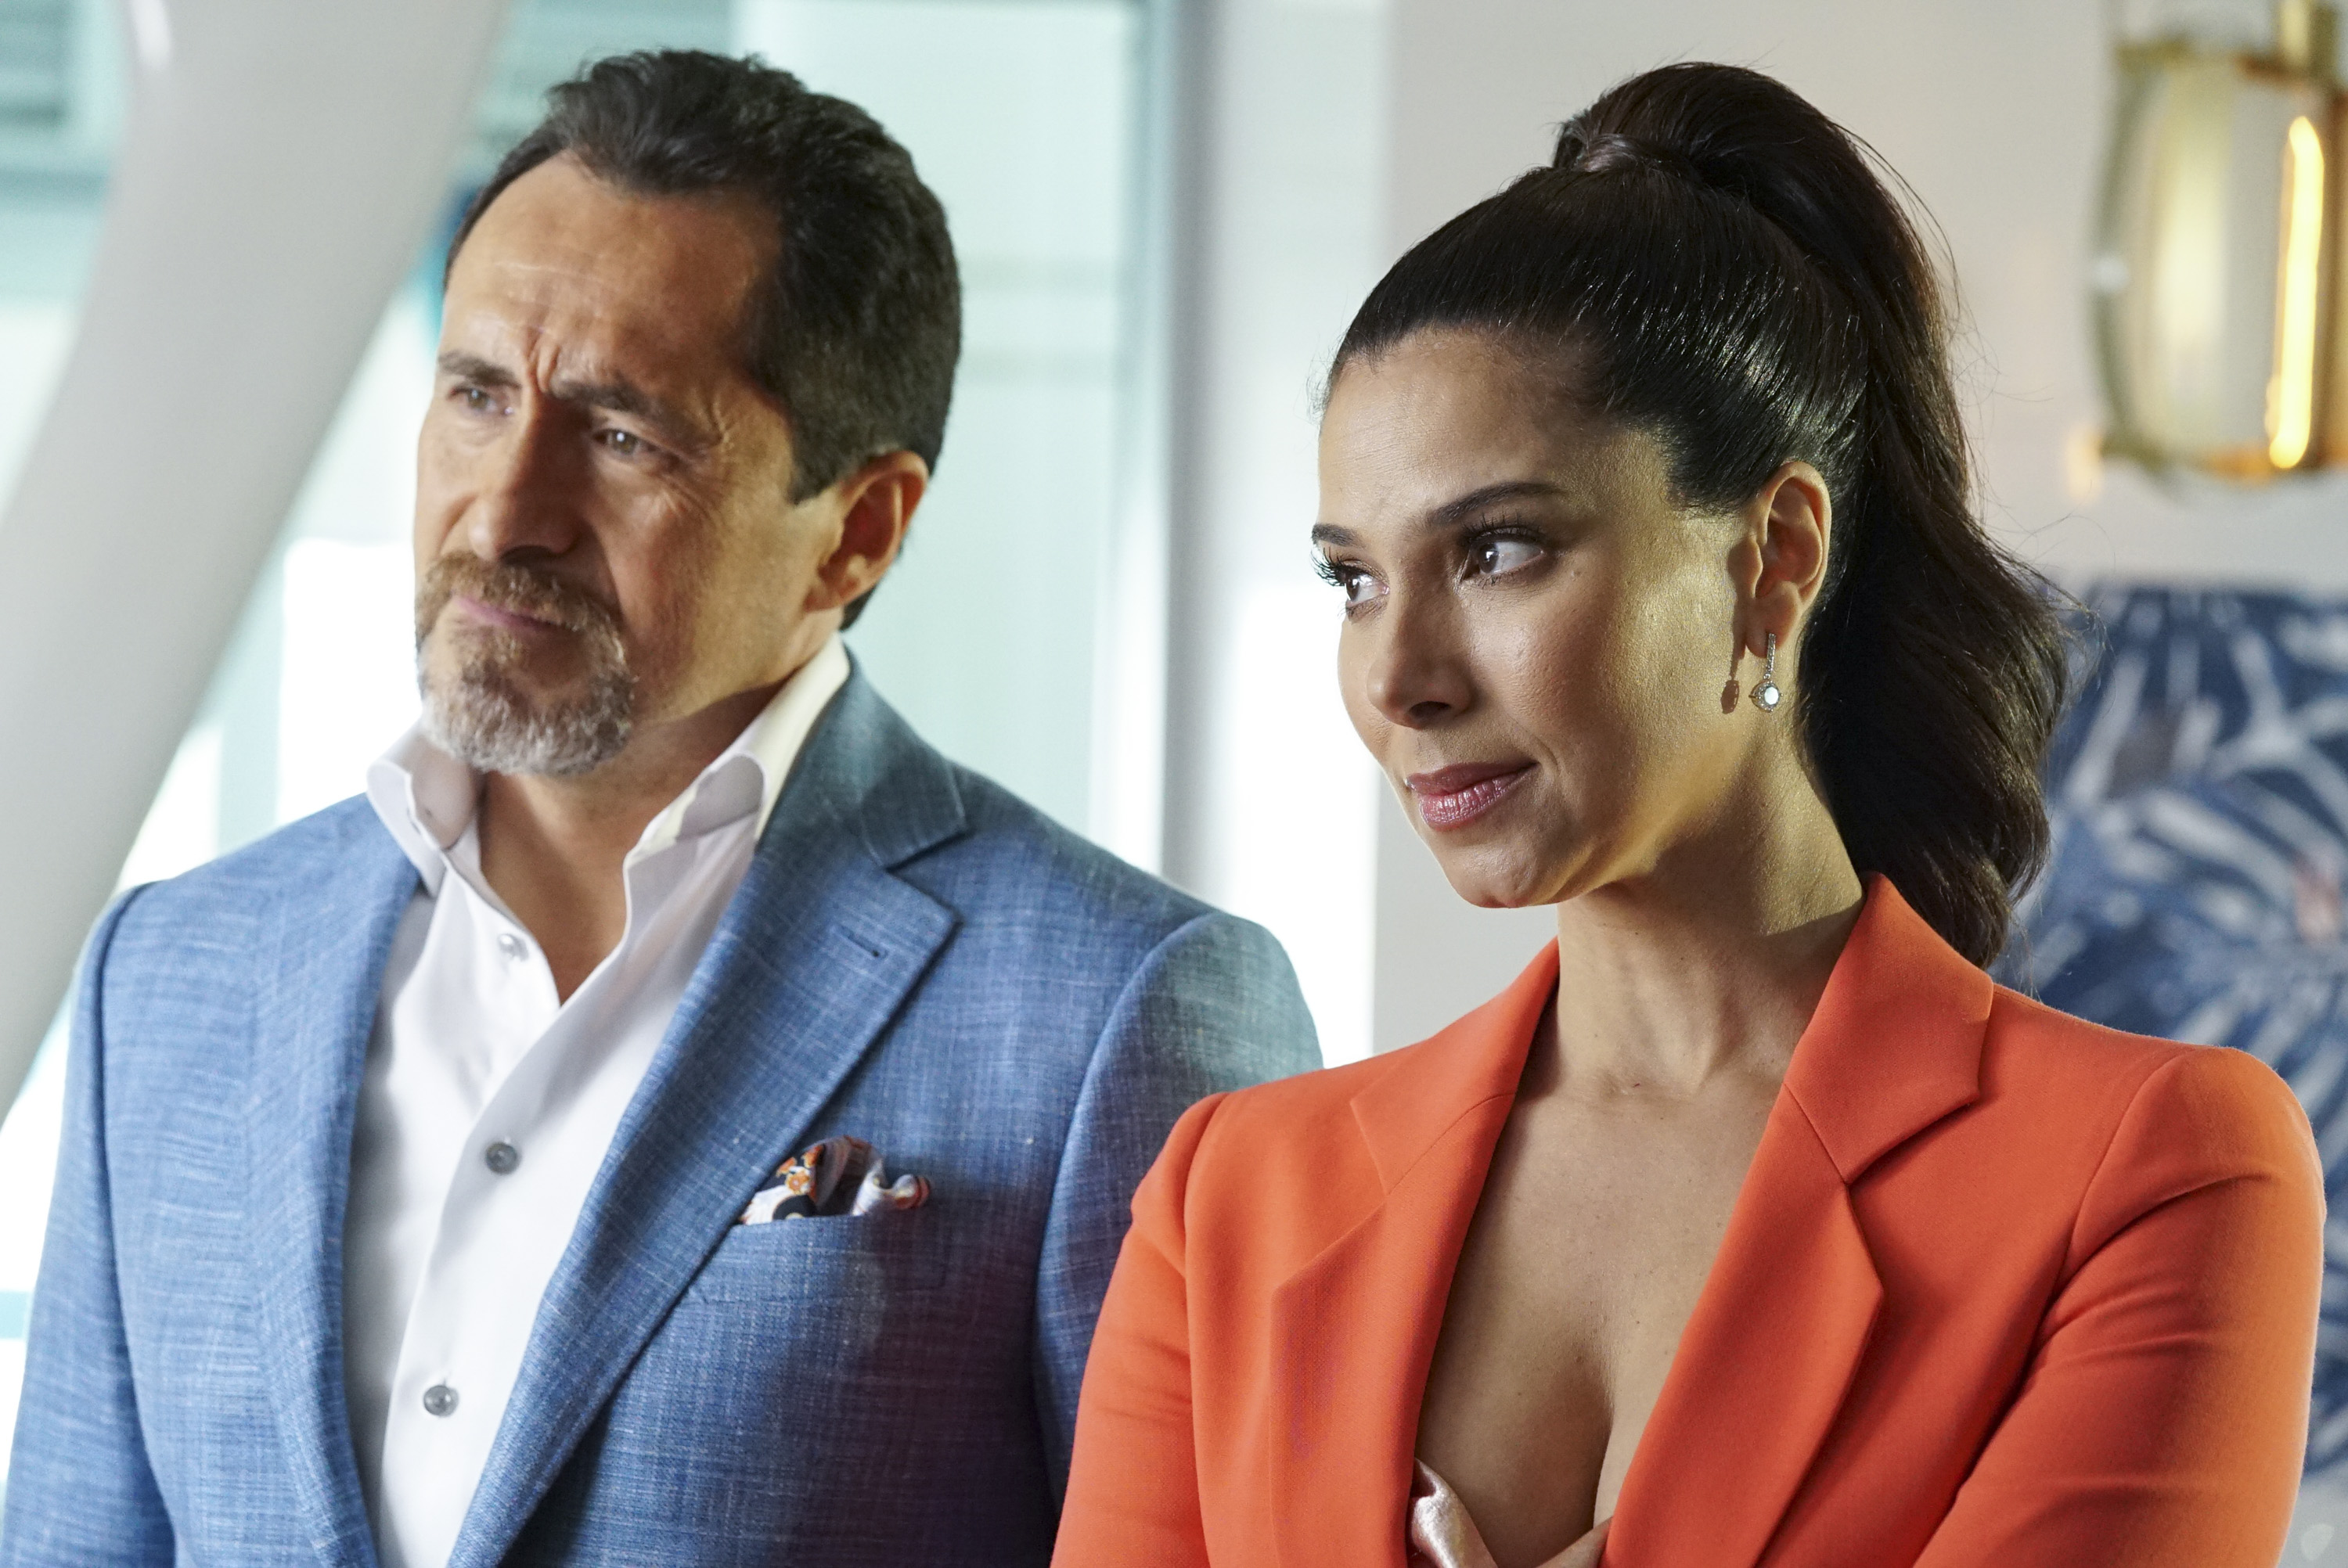 ABC Won't Renew 'Grand Hotel' for a Second Season